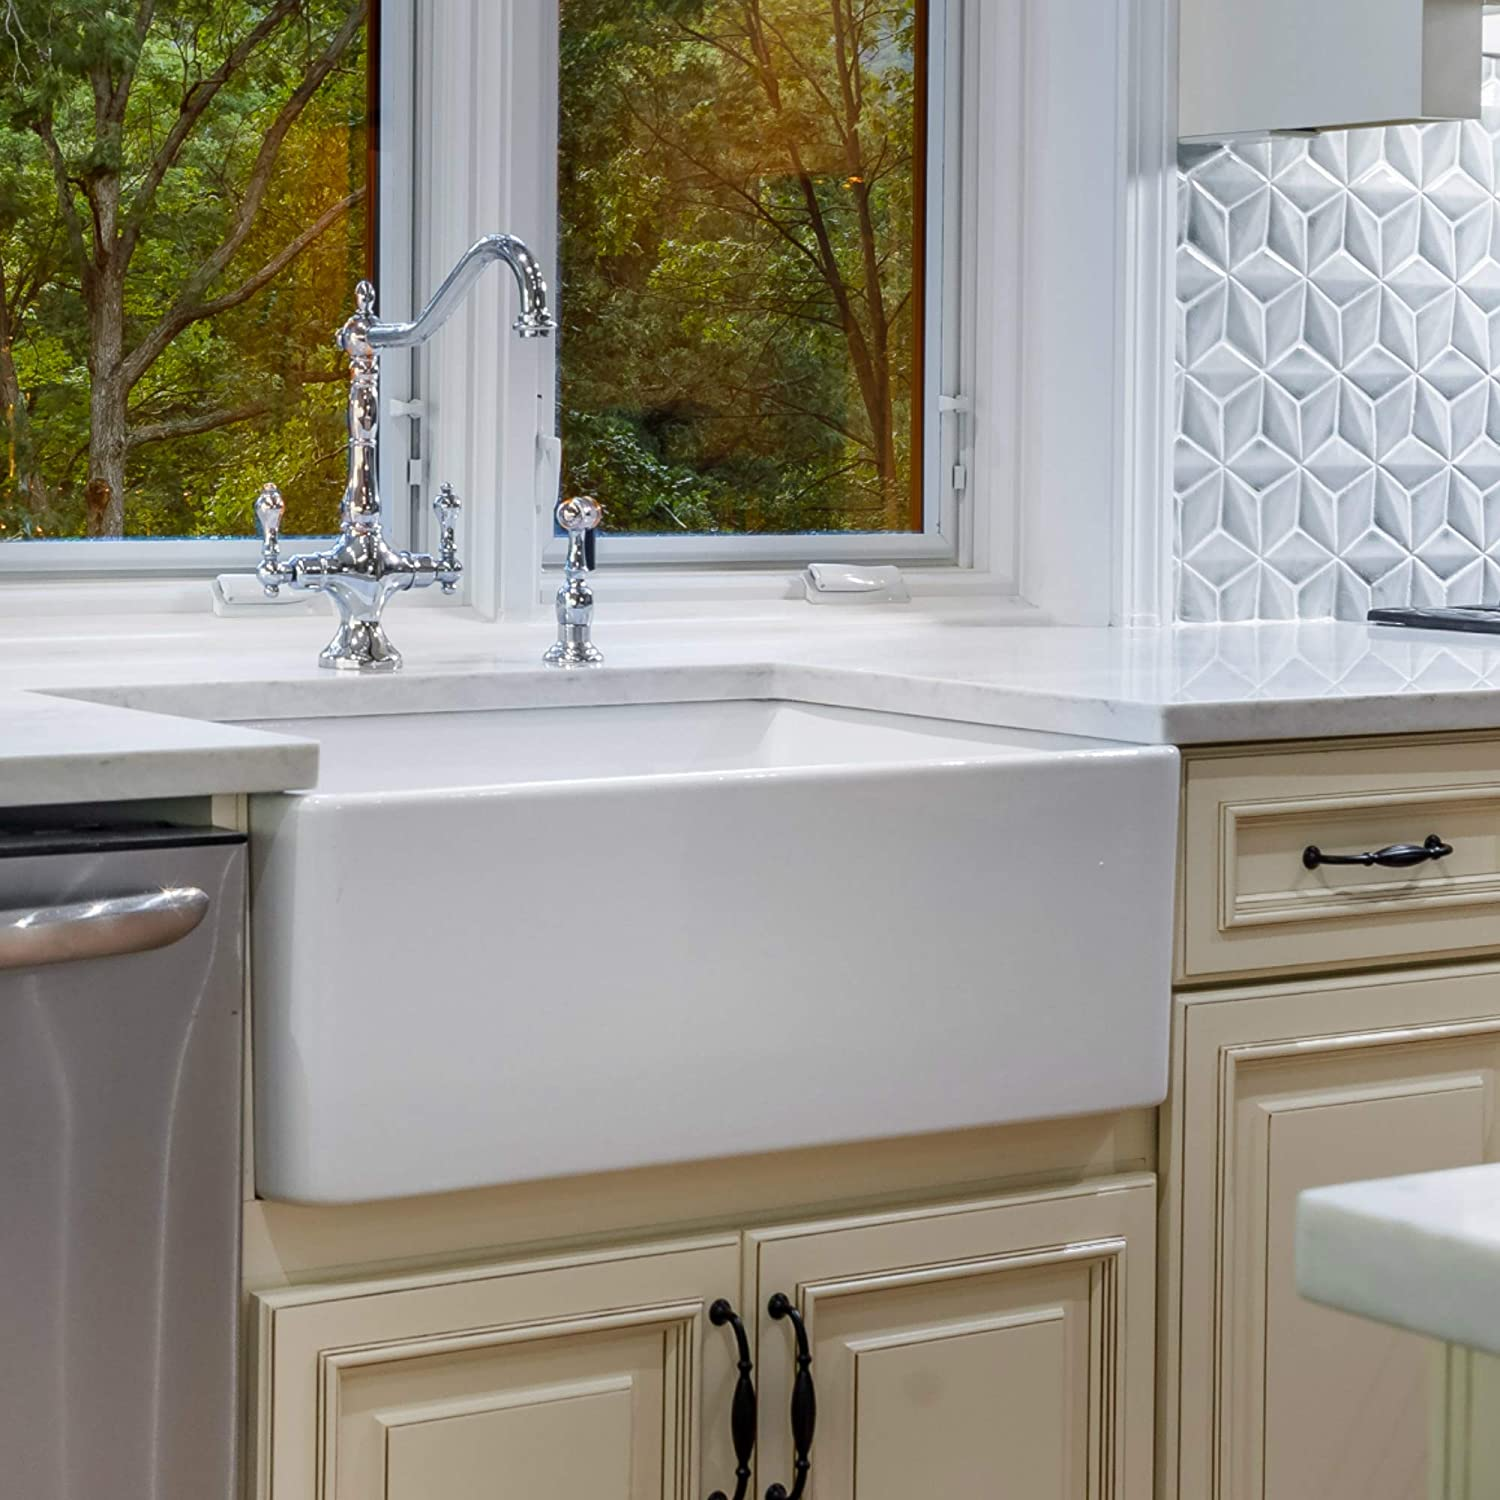 Fine Fixtures Sutton Fireclay Sink, 30 Apron Front Farmhouse Kitchen Sink.